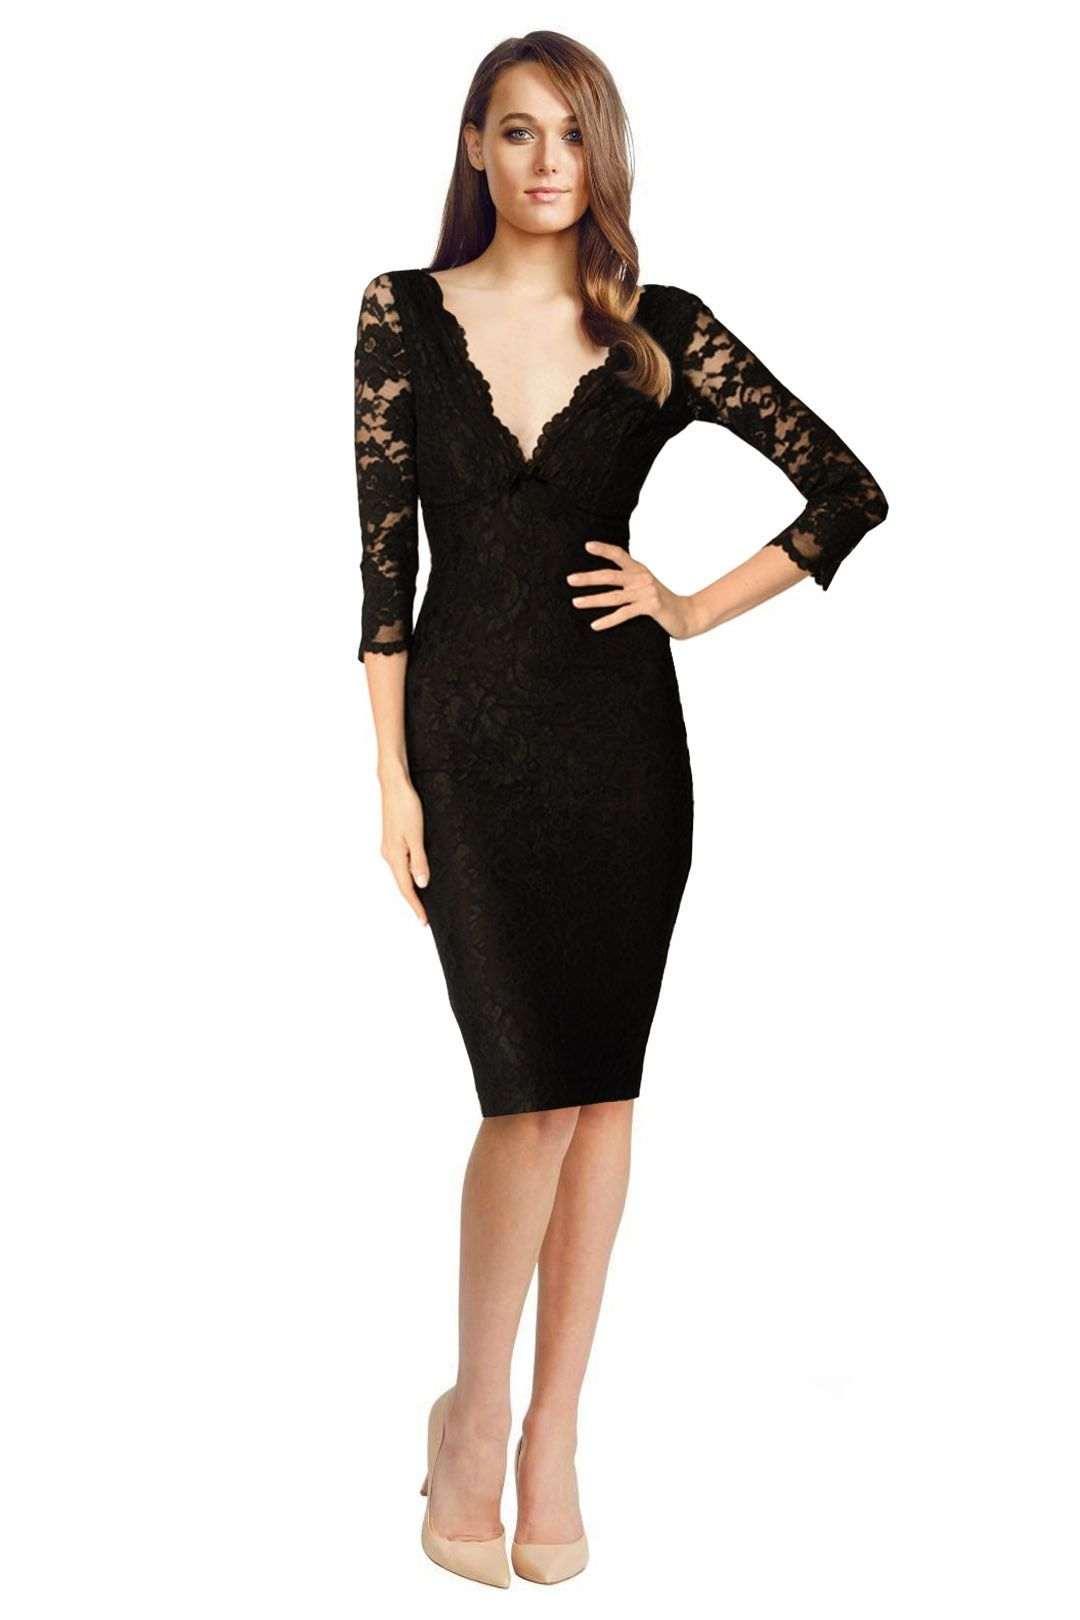 Wheels & Dollbaby - Black Lace Fifi - Black - Front